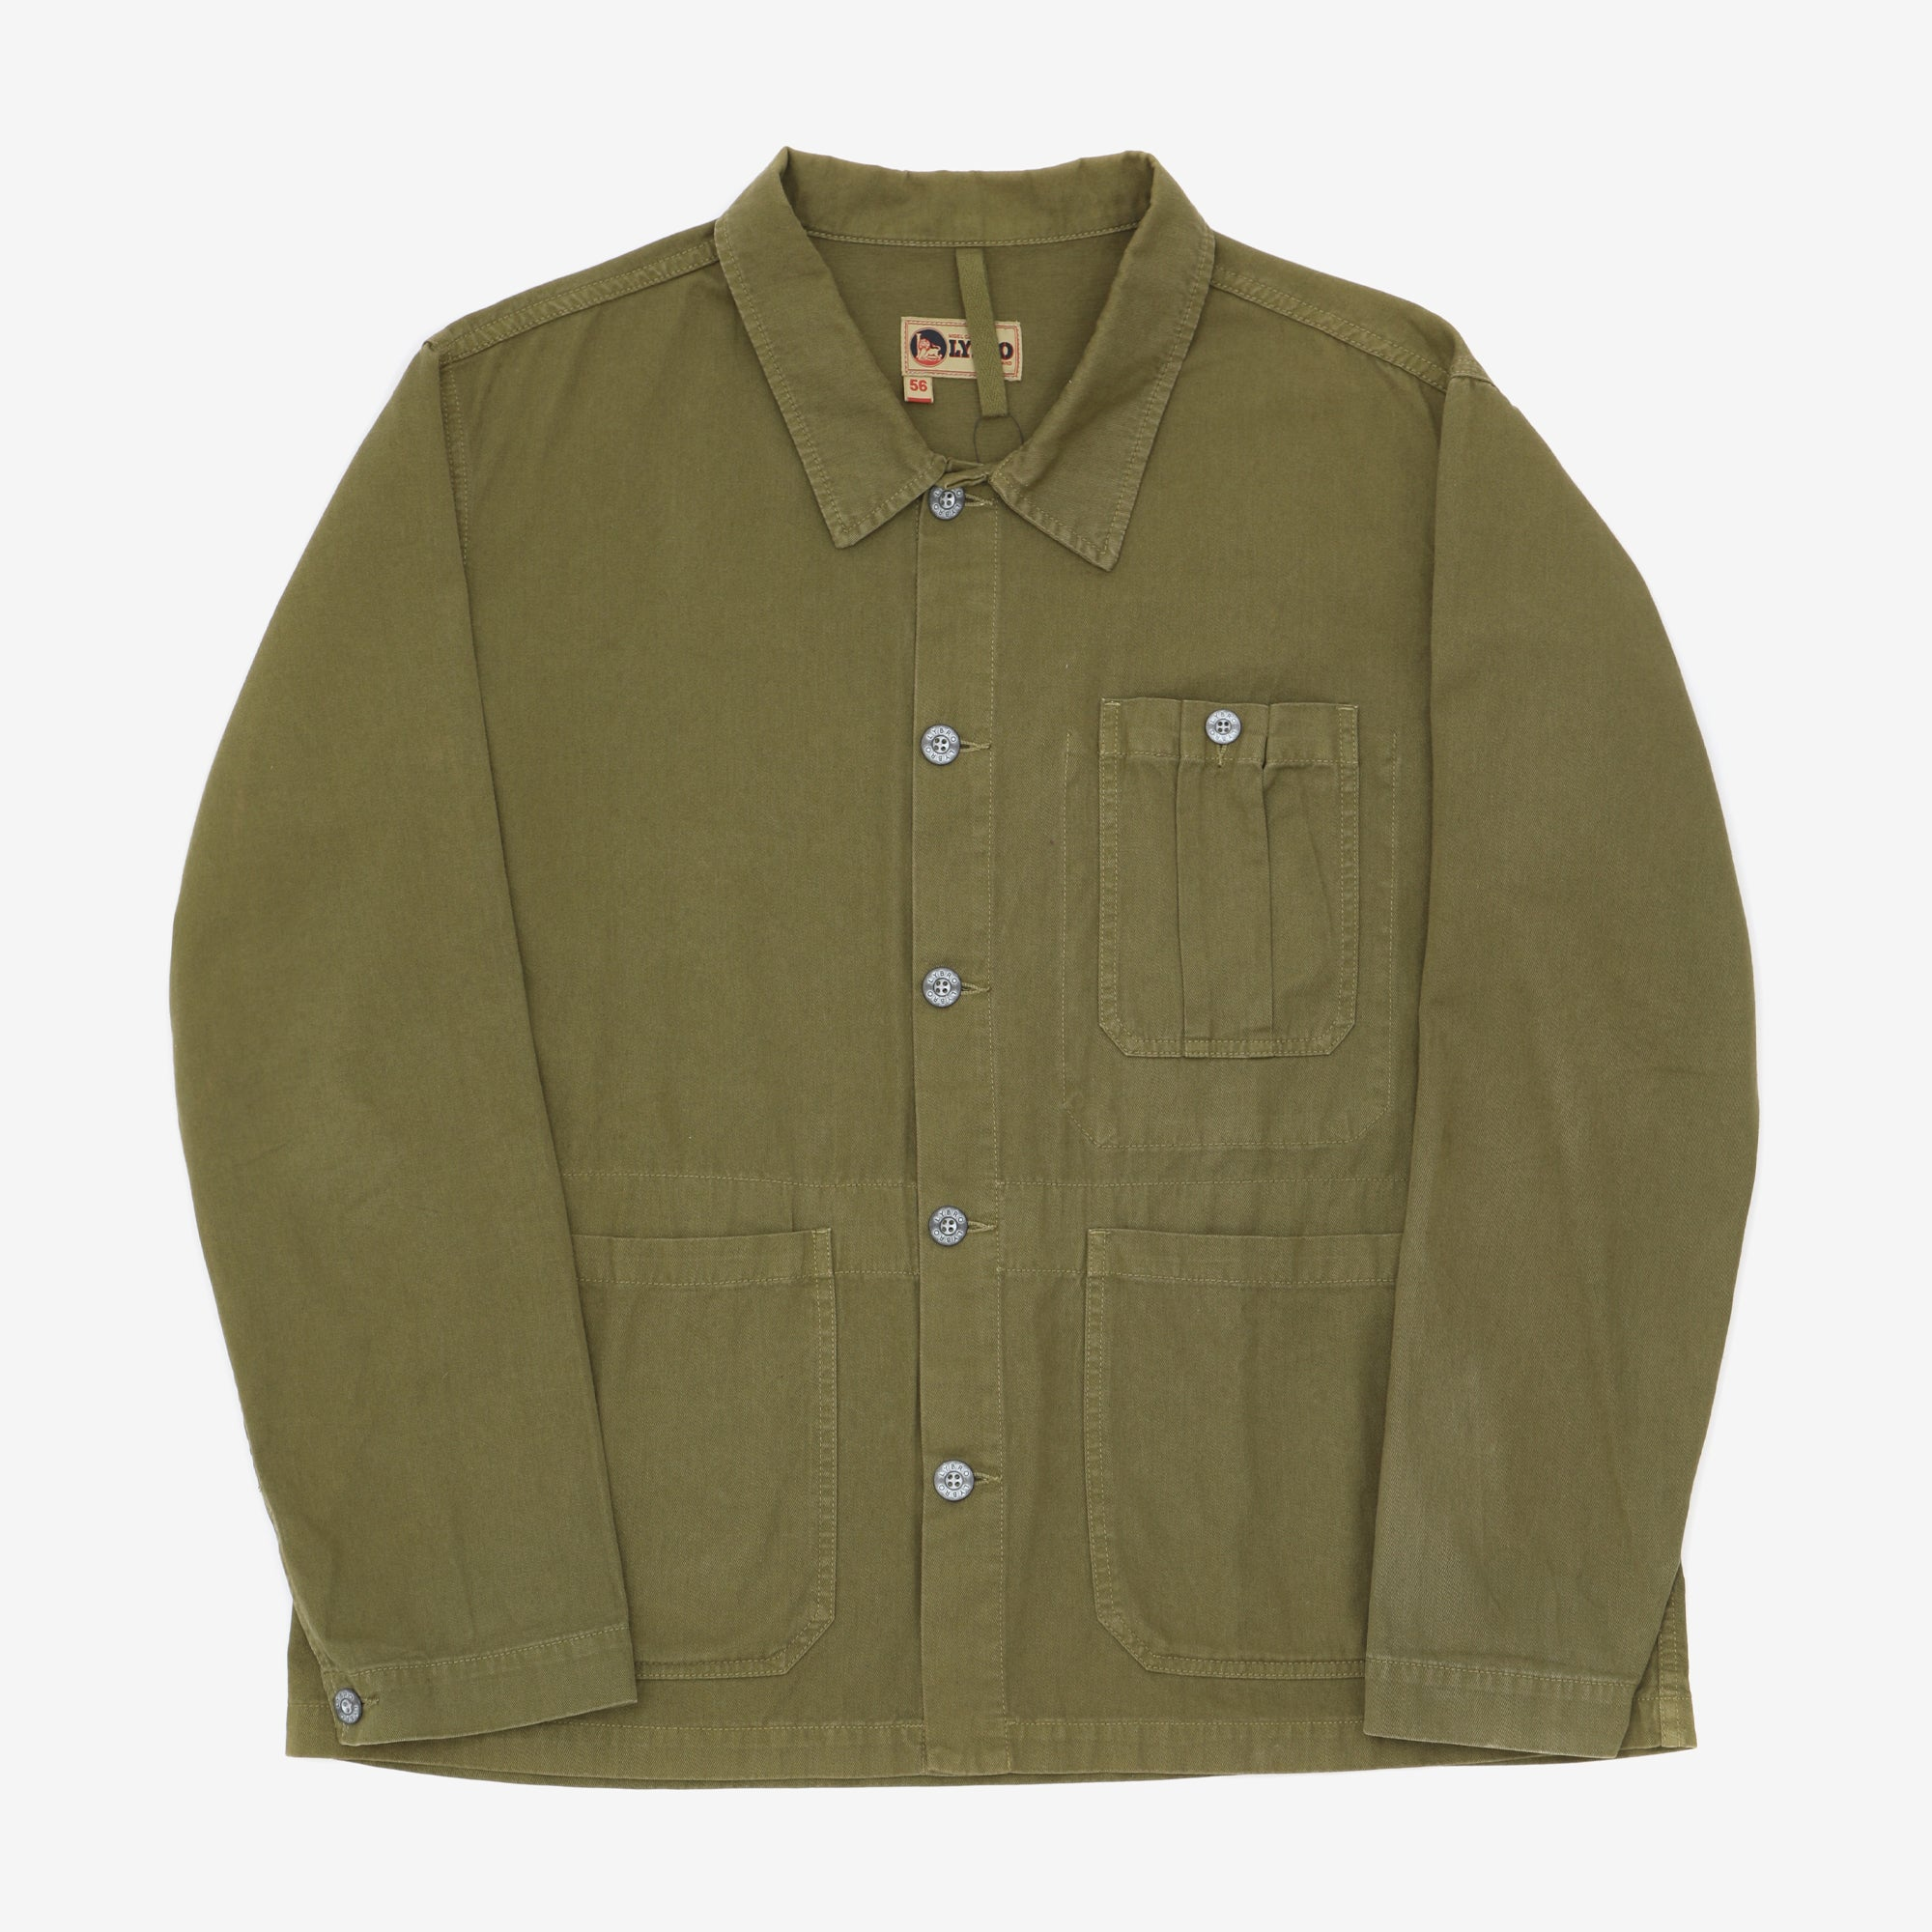 Lybro British Army Jacket